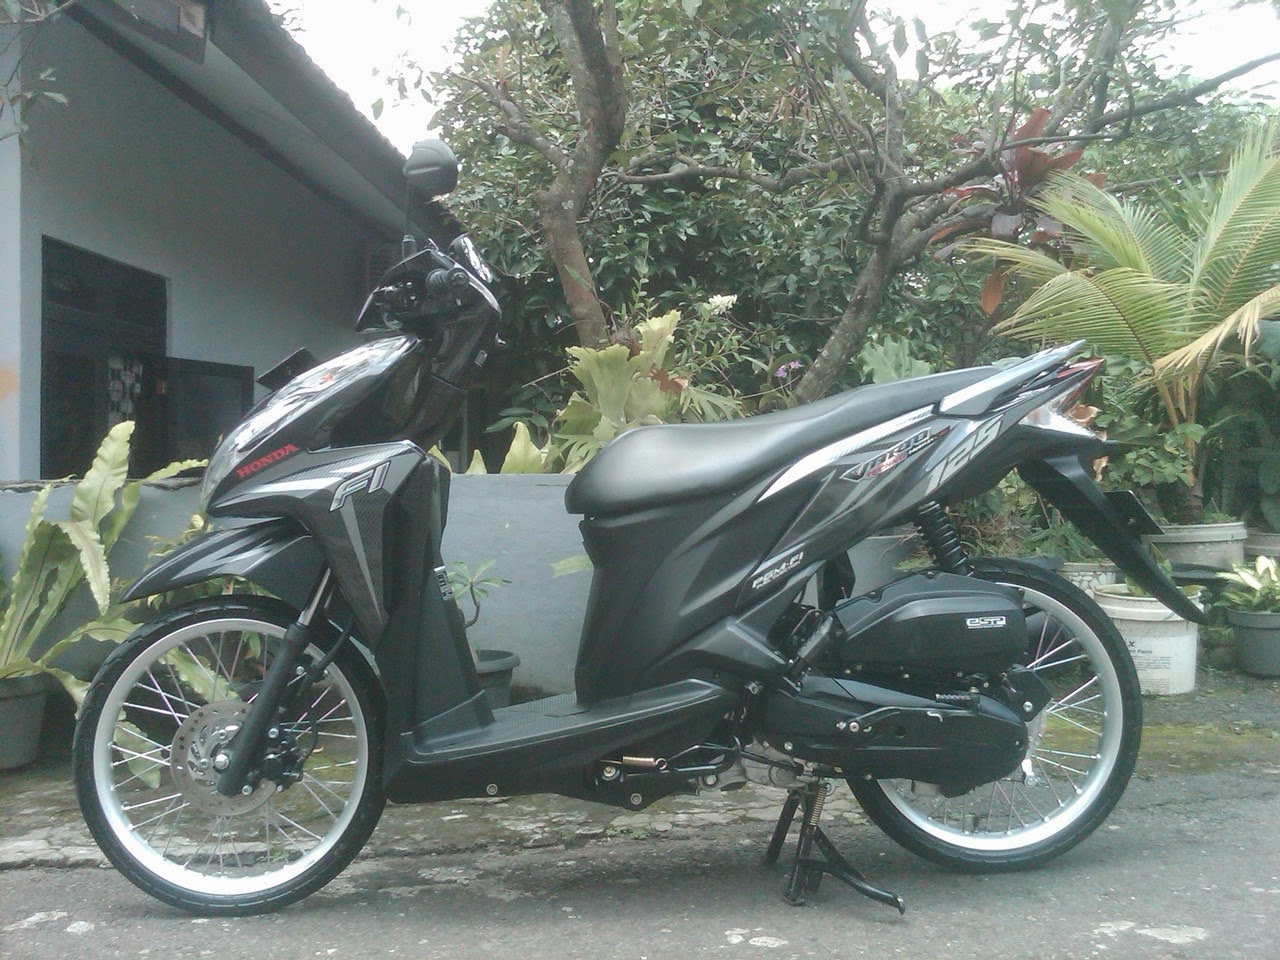 Download Ide Modifikasi Motor Vario 125 Velg 17 Terbaru Velgy Motor